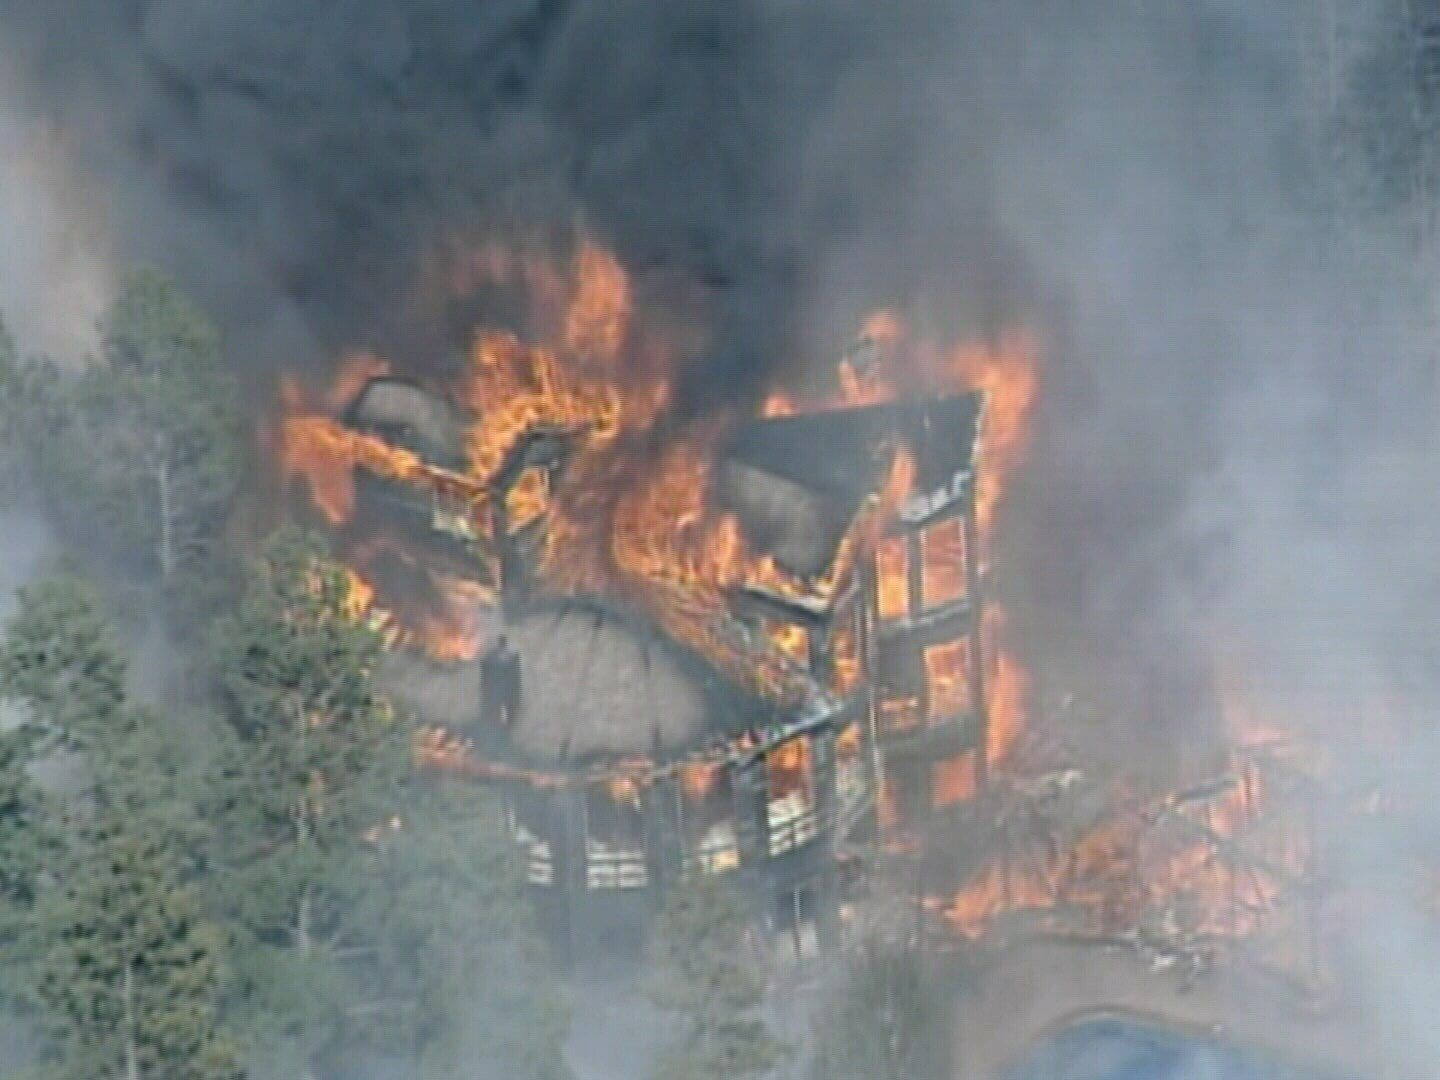 House burning in Black Forest Fire